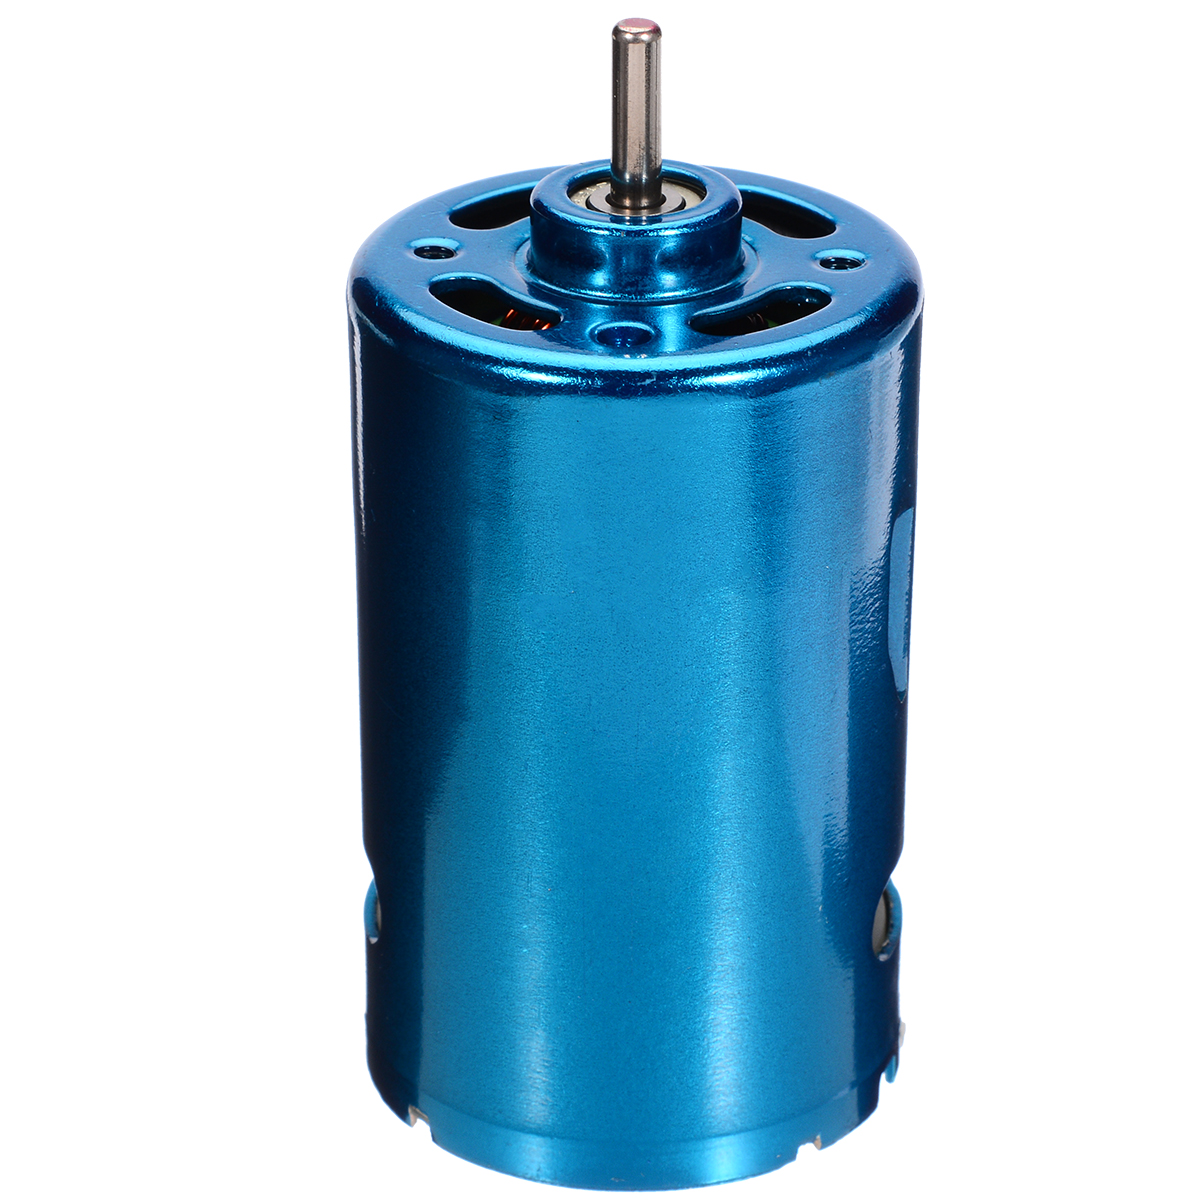 High Accuracy RS-550 Motor DC 12V 24V 30000 RPM High Speed Large Torque Low Noise with Wear Resistance For RC Car Boat Model